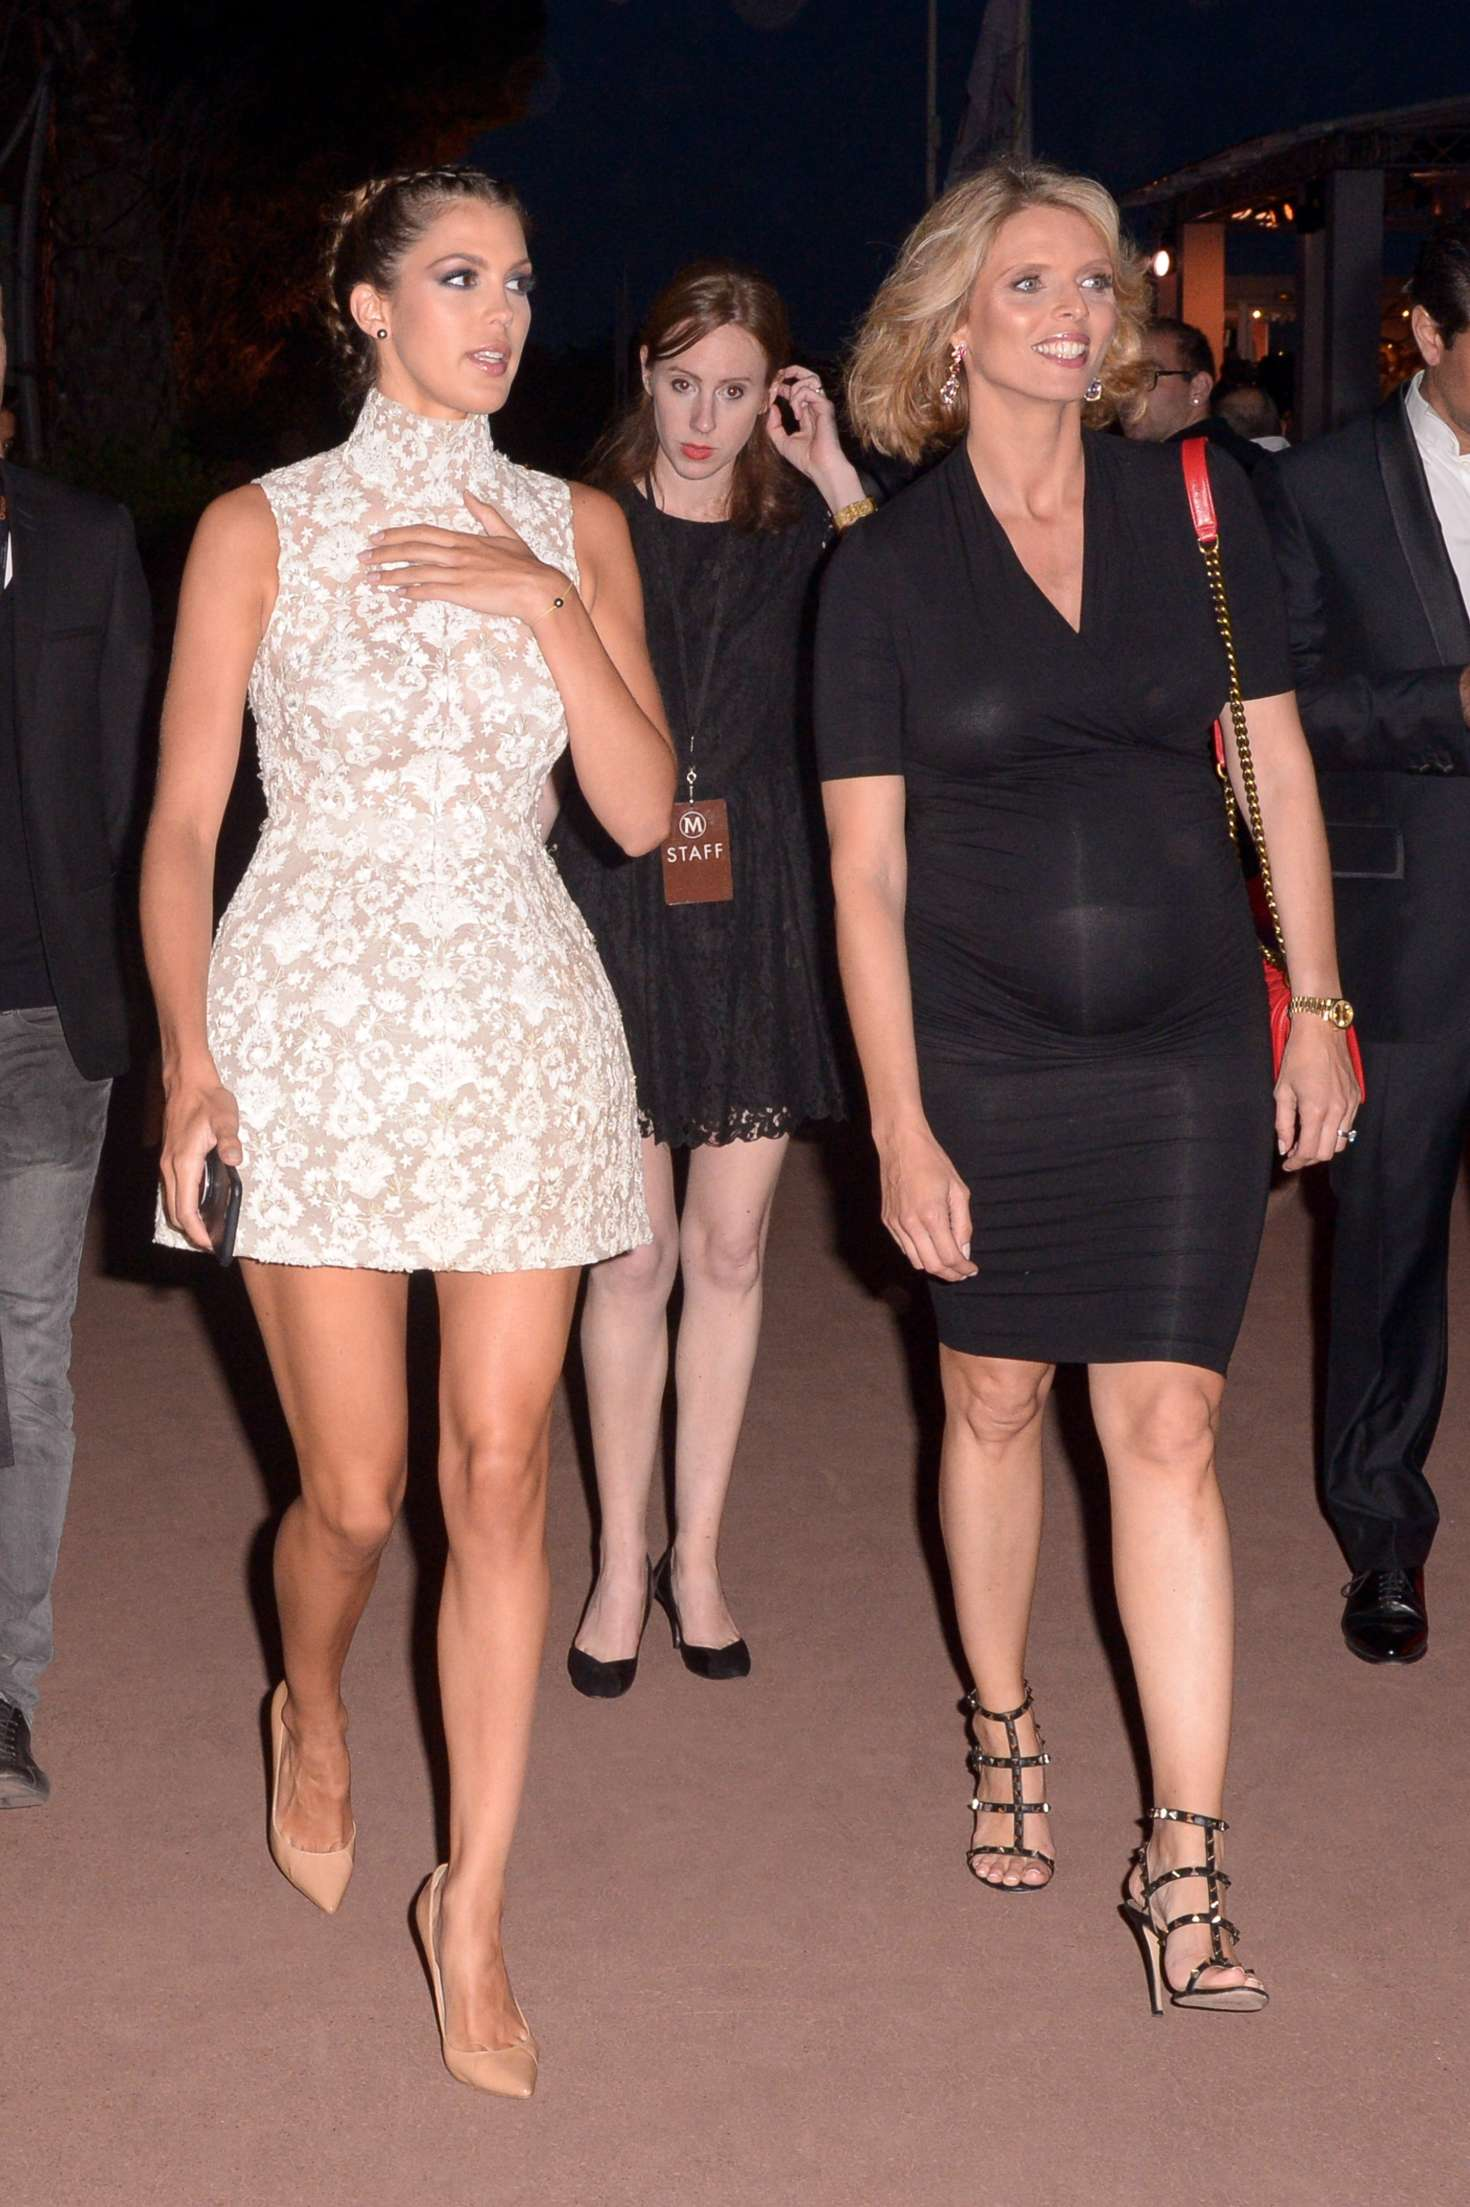 Iris Mittenaere and Sylvie Tellier Sighting night out in Cannes